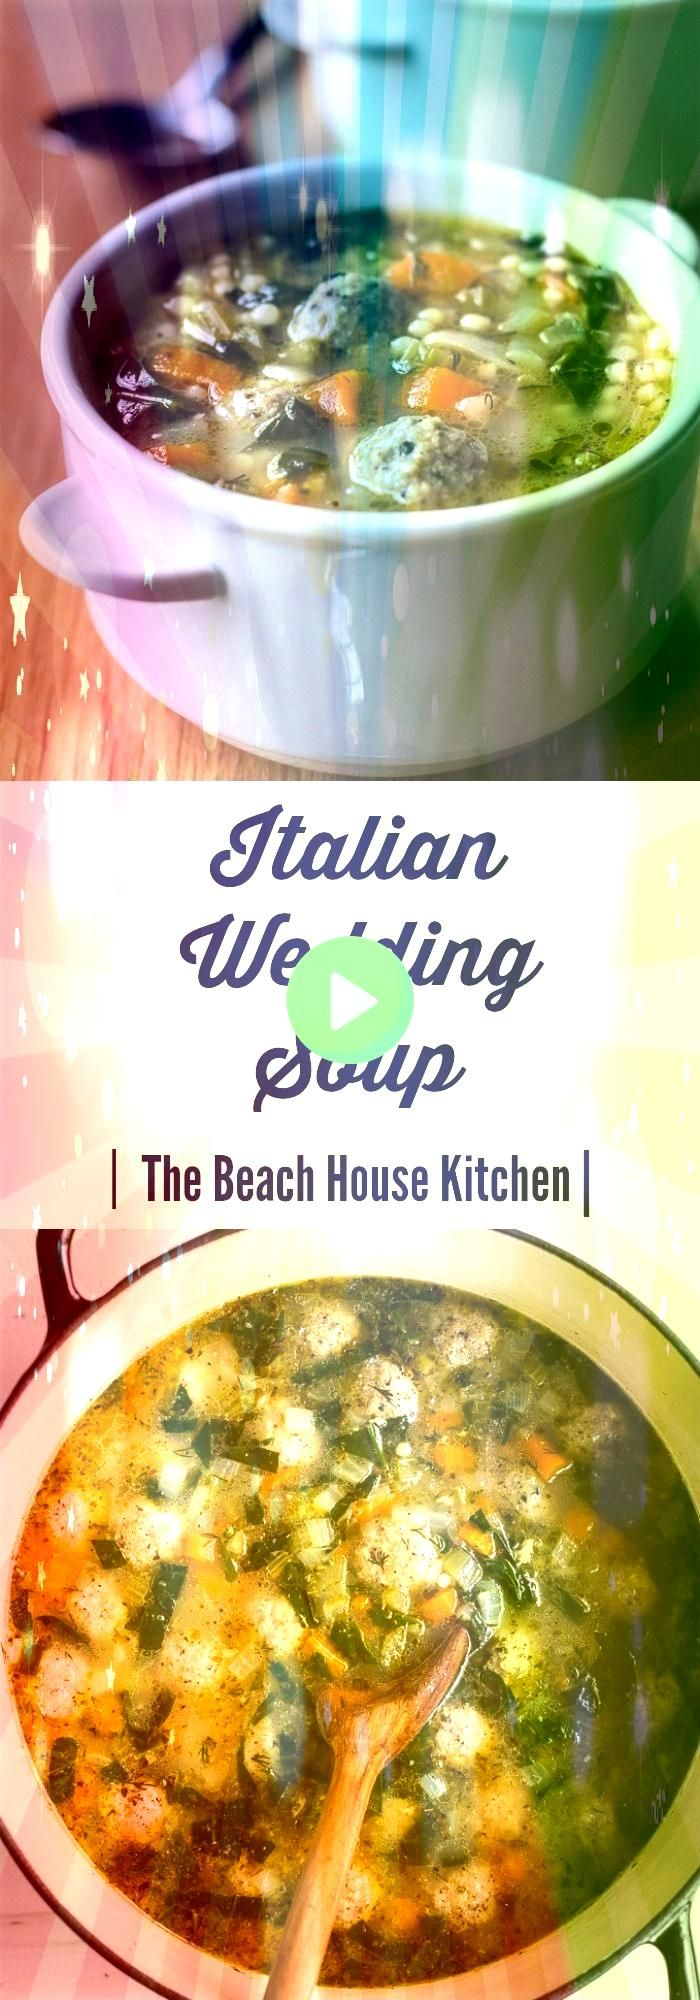 Wedding Soup  A hearty comforting bowl of this Italian Wedding Soup is a delicious meal in itself thebeachhousekItalian Wedding Soup  A hearty comforting bowl of this Ita...